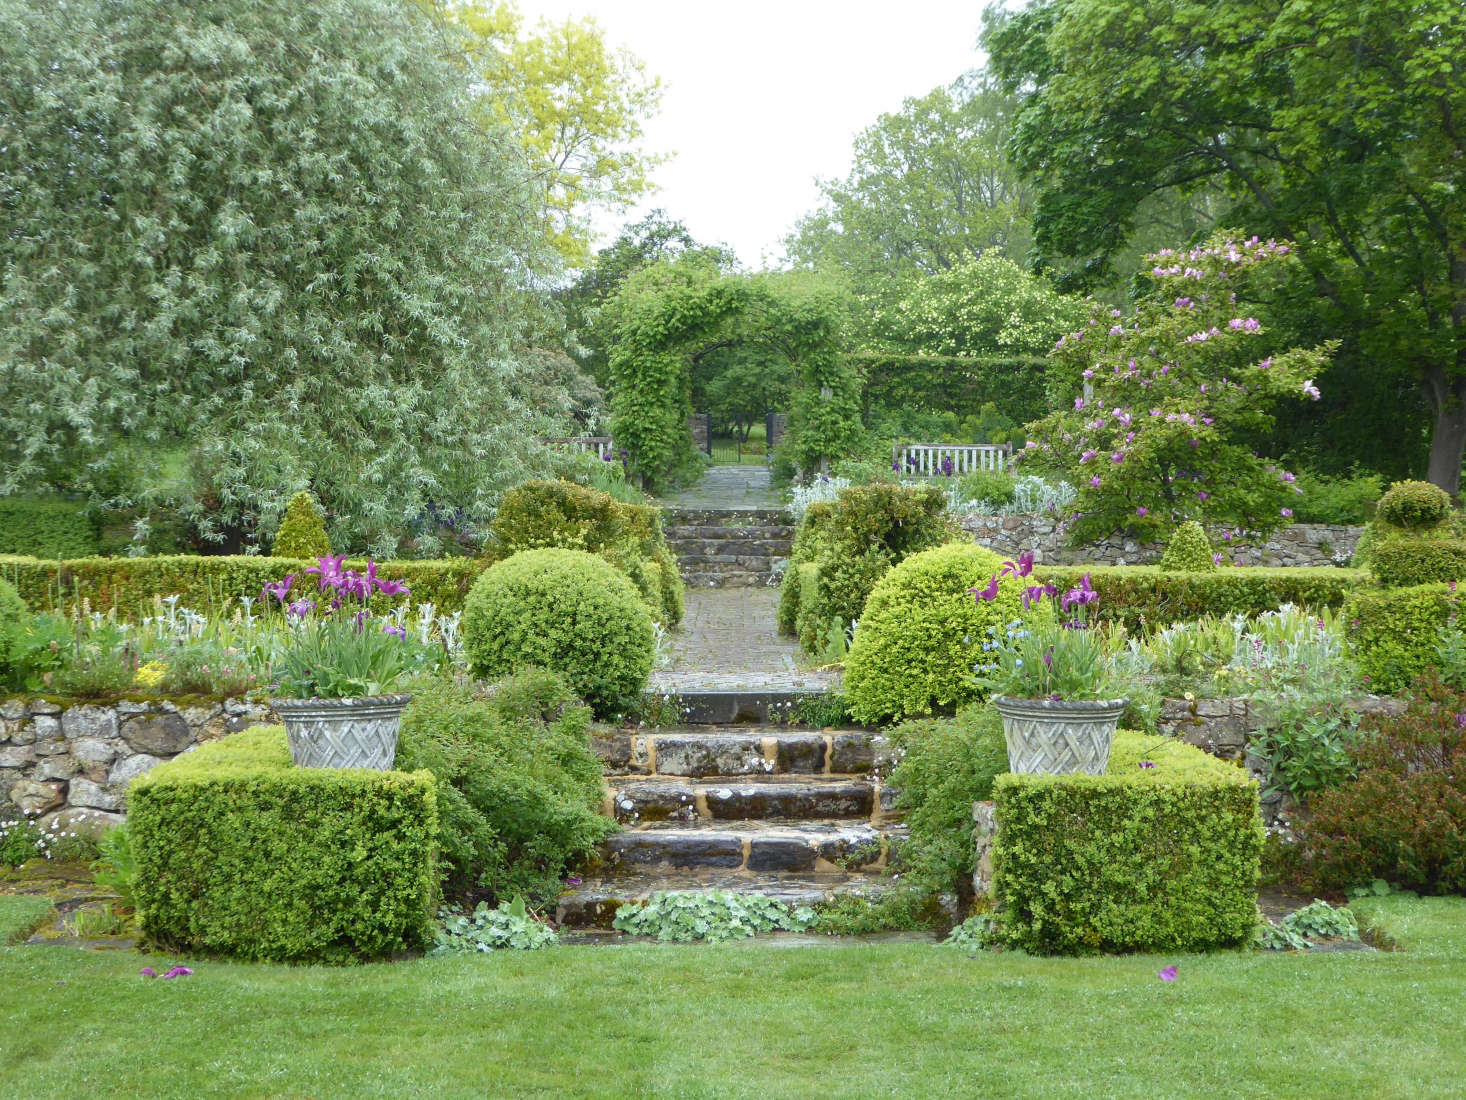 Terracing leads to the rose walk.